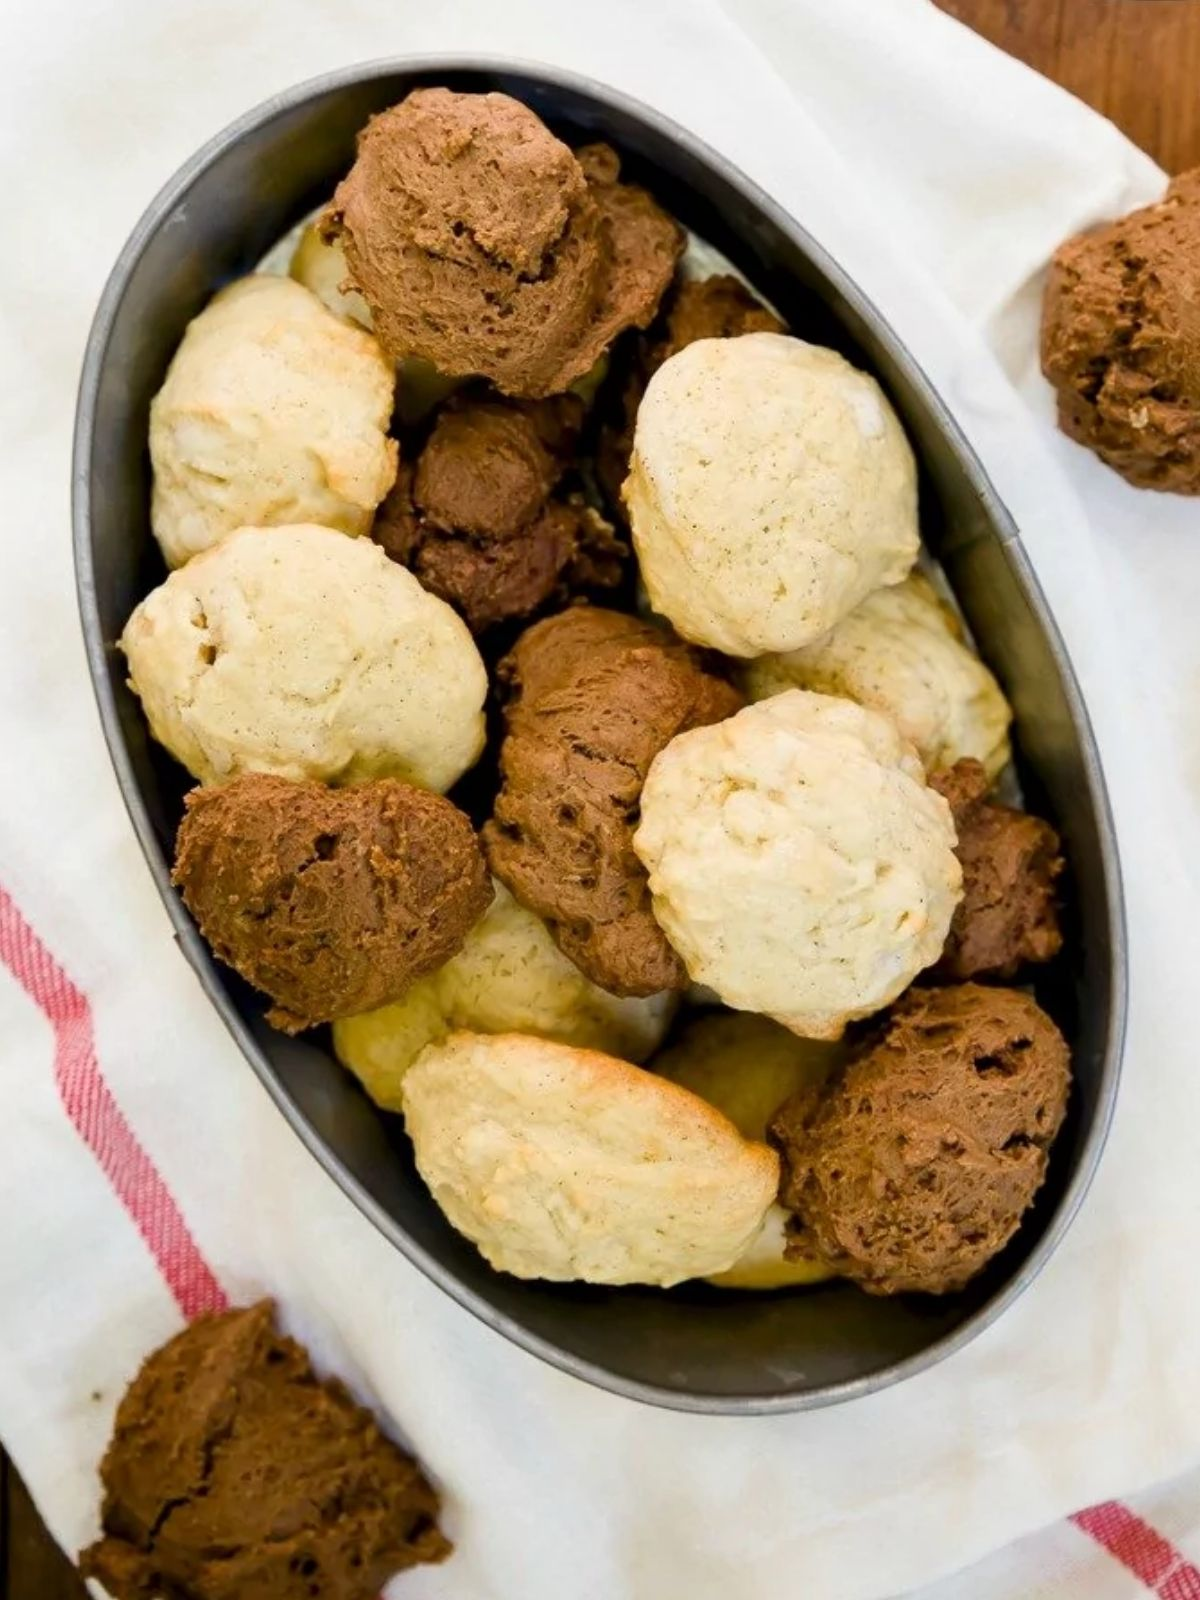 Cookies made from leftover frosting piled into a black rectangular bowl.